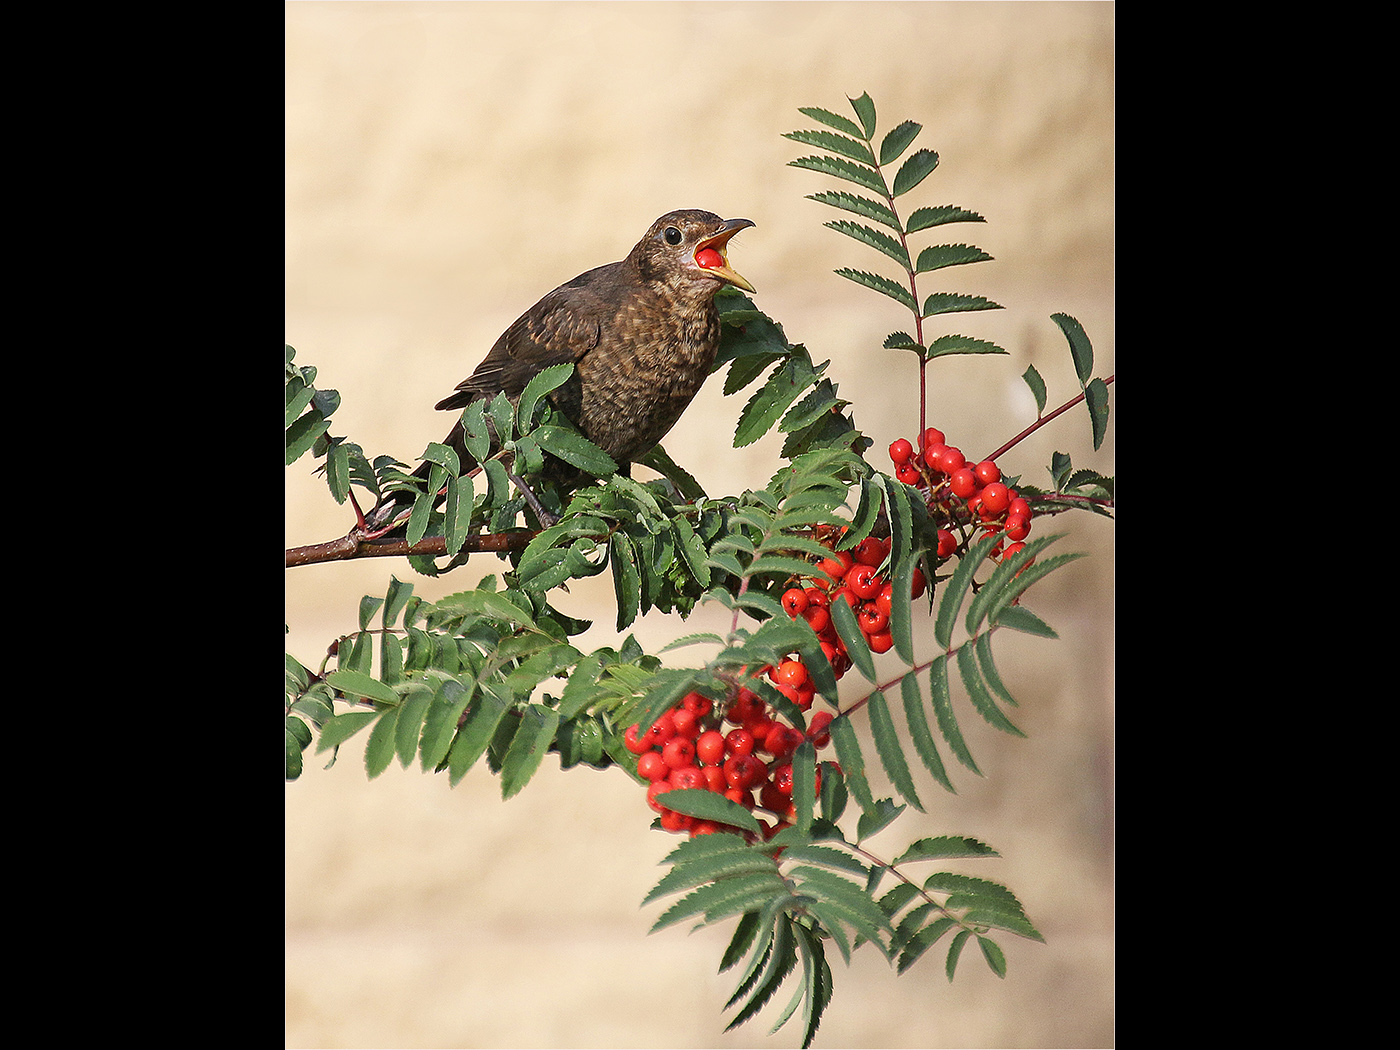 Female Blackbird Eating Berries